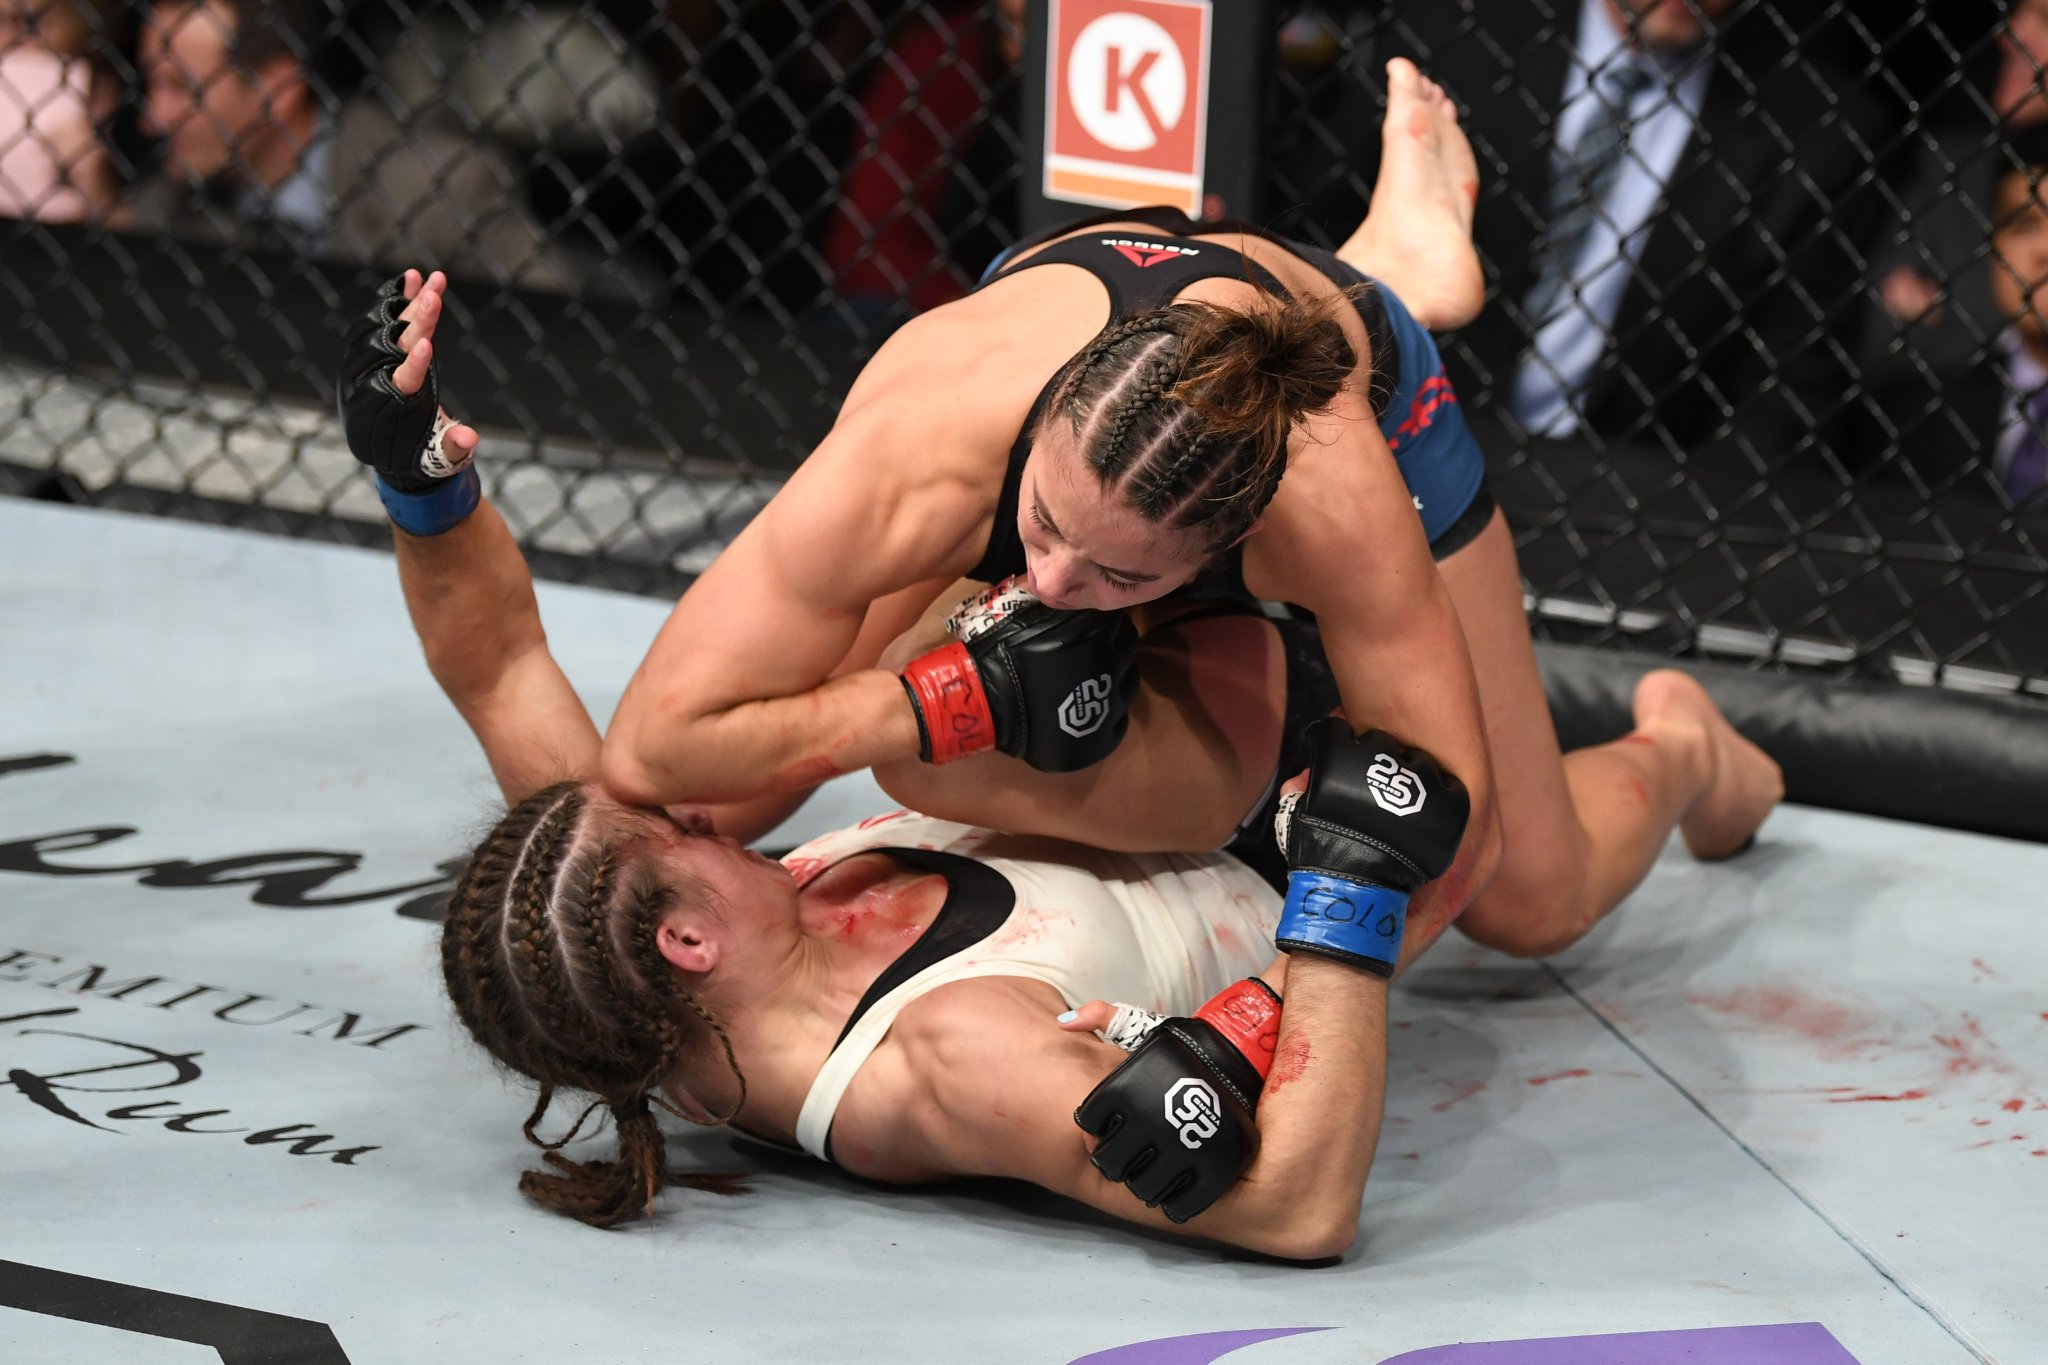 UFC Fight Night 139 Results: Maycee Barber Makes a Phenomenal UFC Debut -